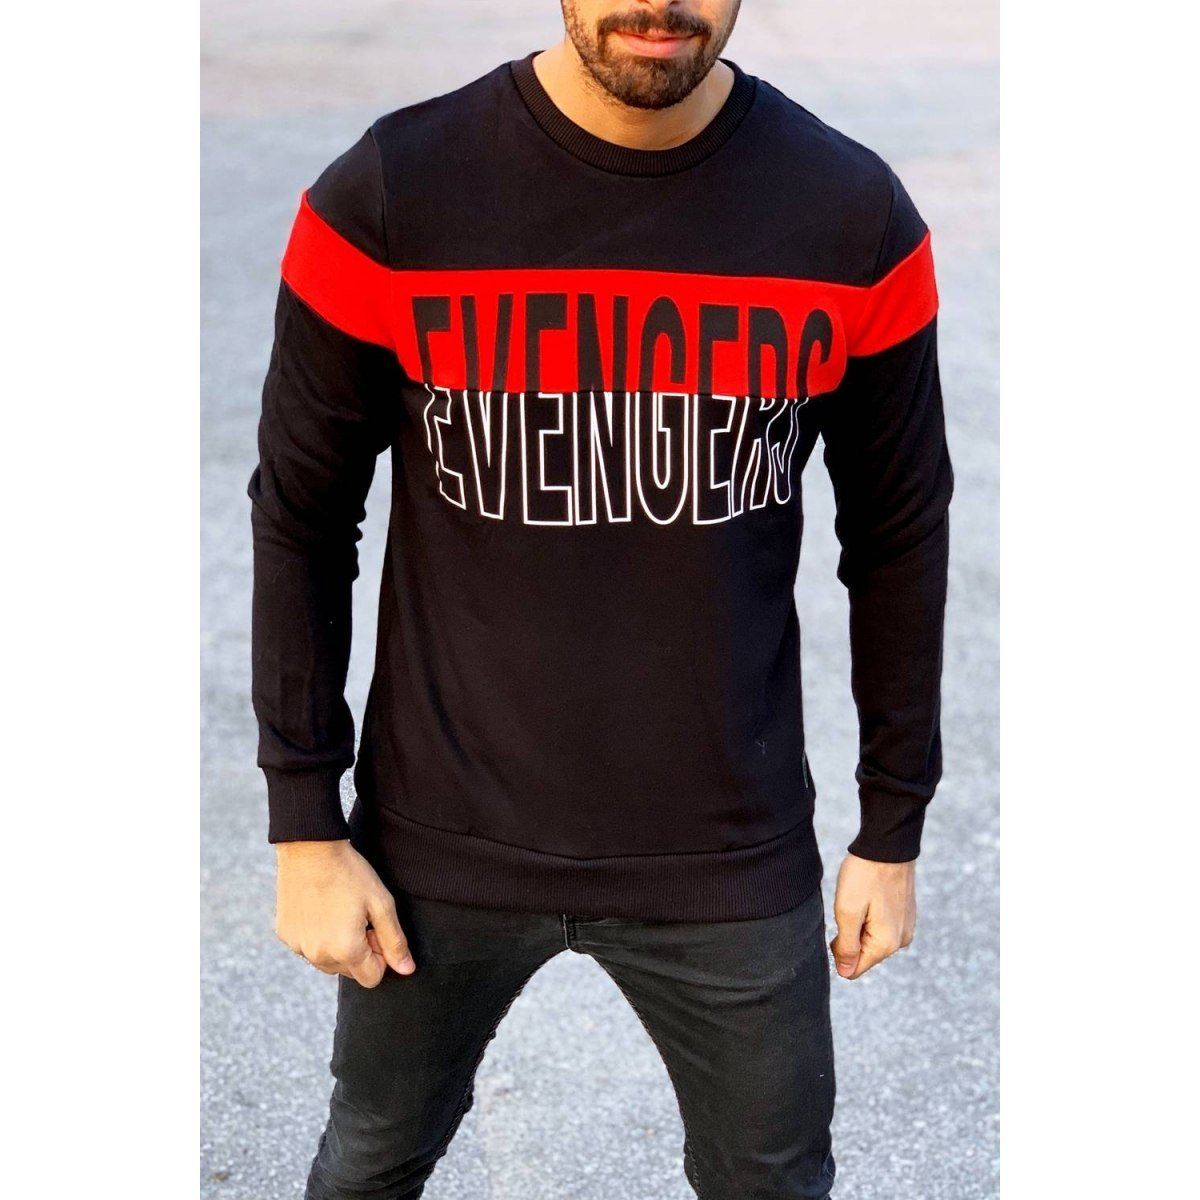 Evengers Sweatshirt in Black Mv Premium Brand - 1